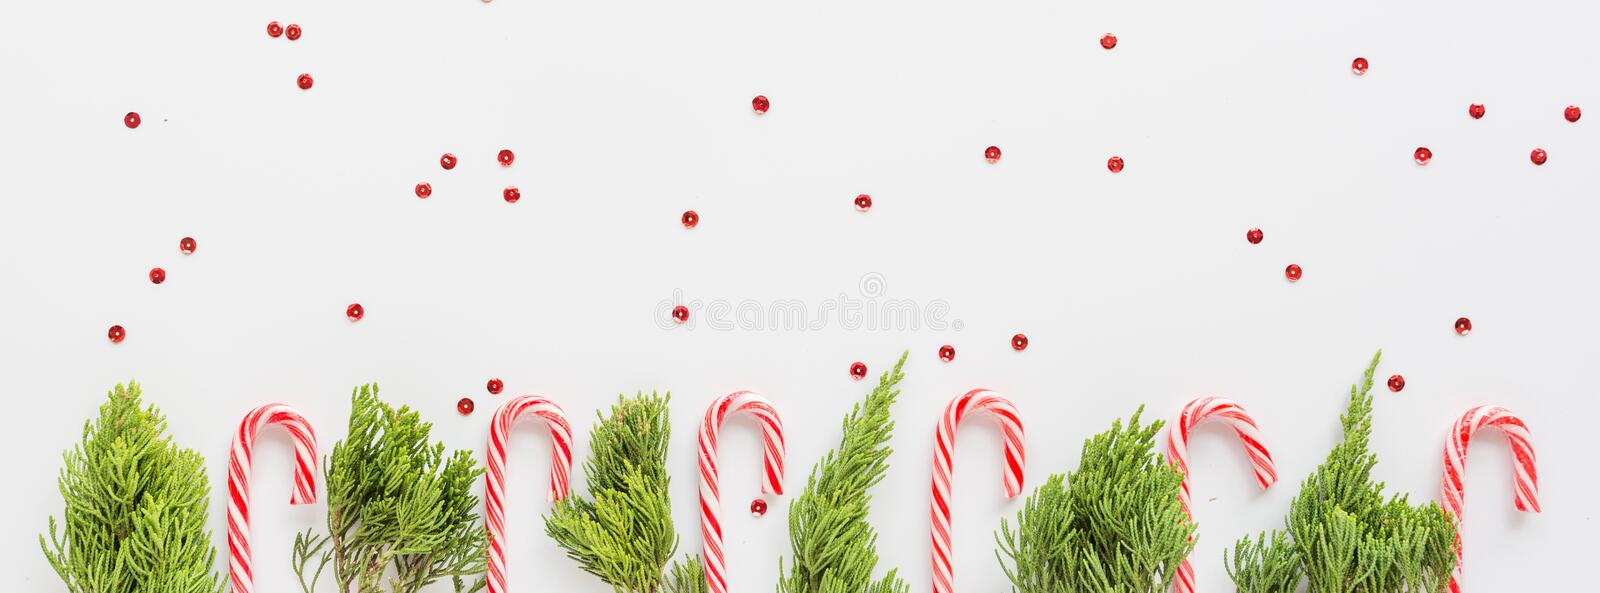 Christmas fir branches and lollipop canes on white. new year concept. Horizontal banner for web design. Greeting card, xmas royalty free stock photo